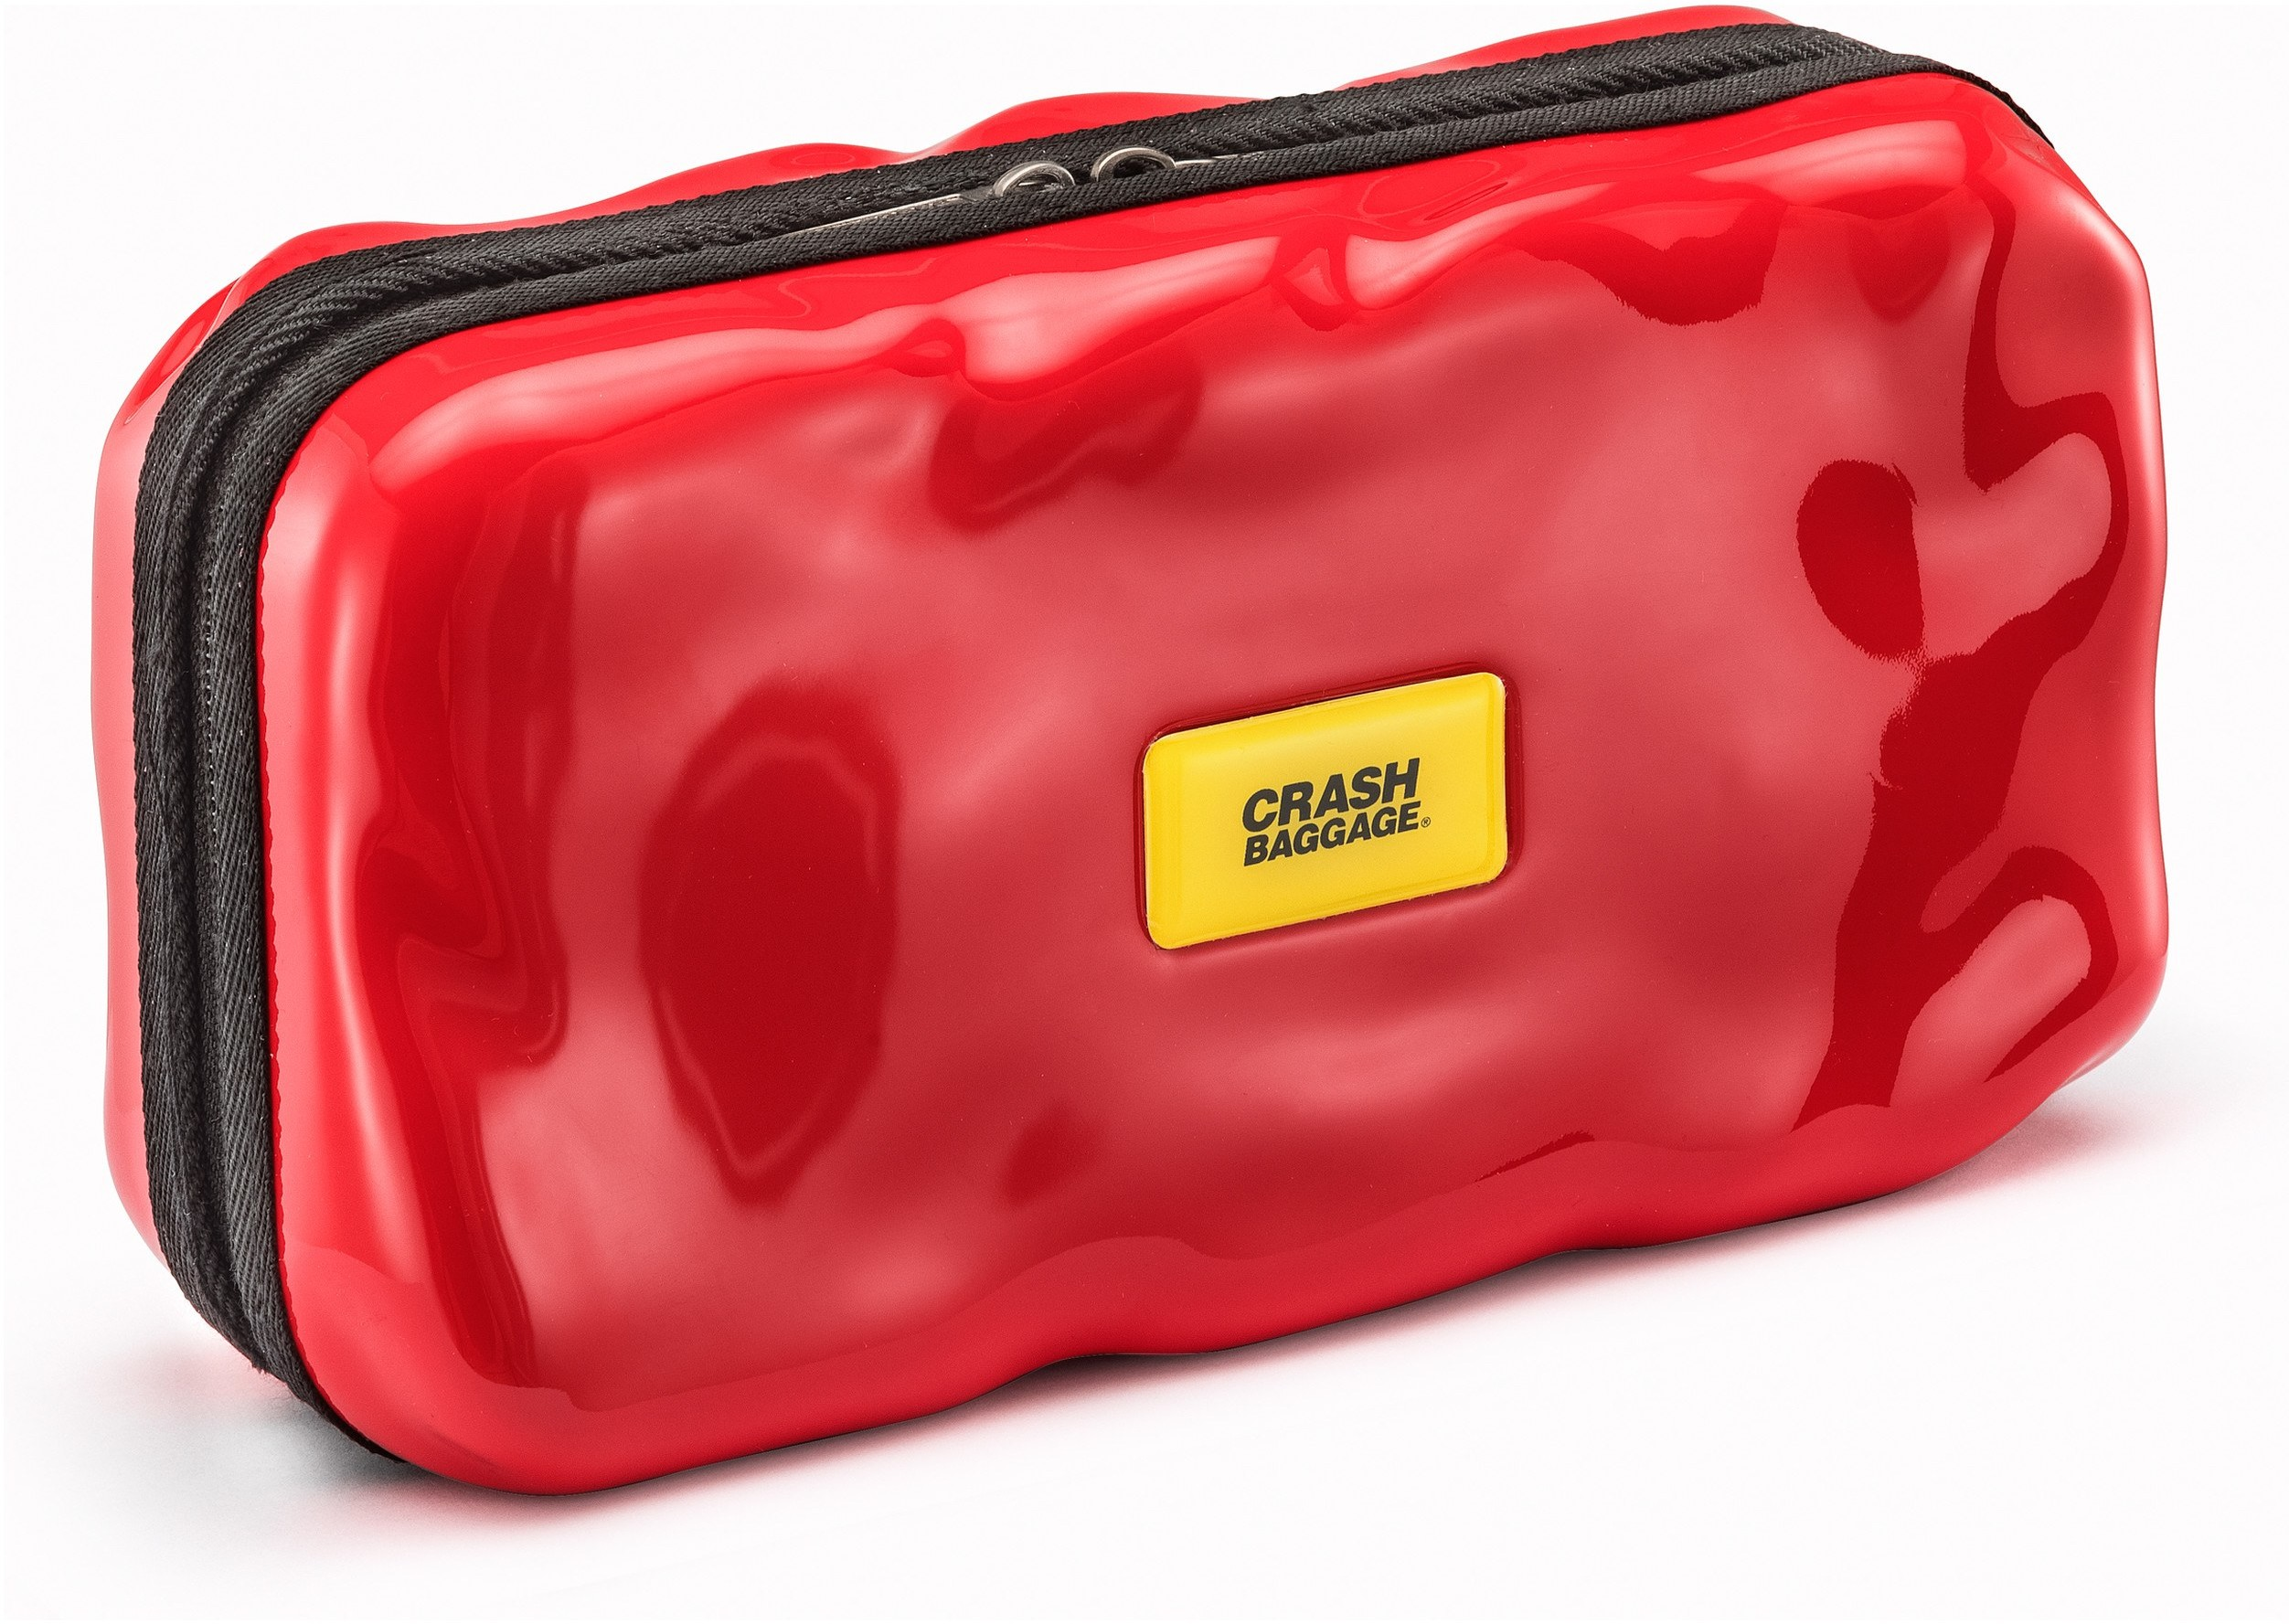 Crash Baggage Kosmetyczka Crash Baggage Red CB370.11